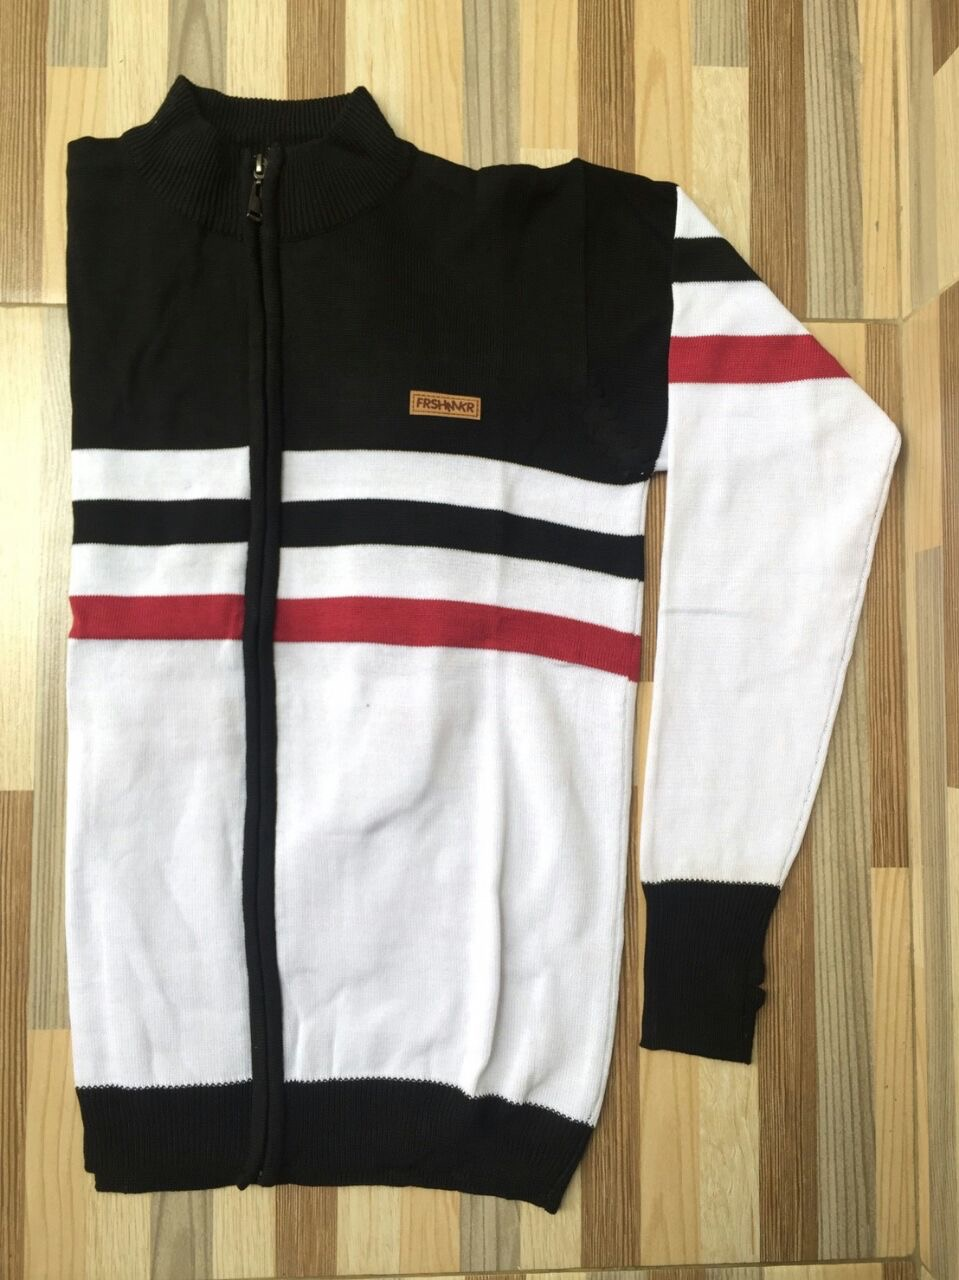 Jaket Sweater Black-White Strip Red